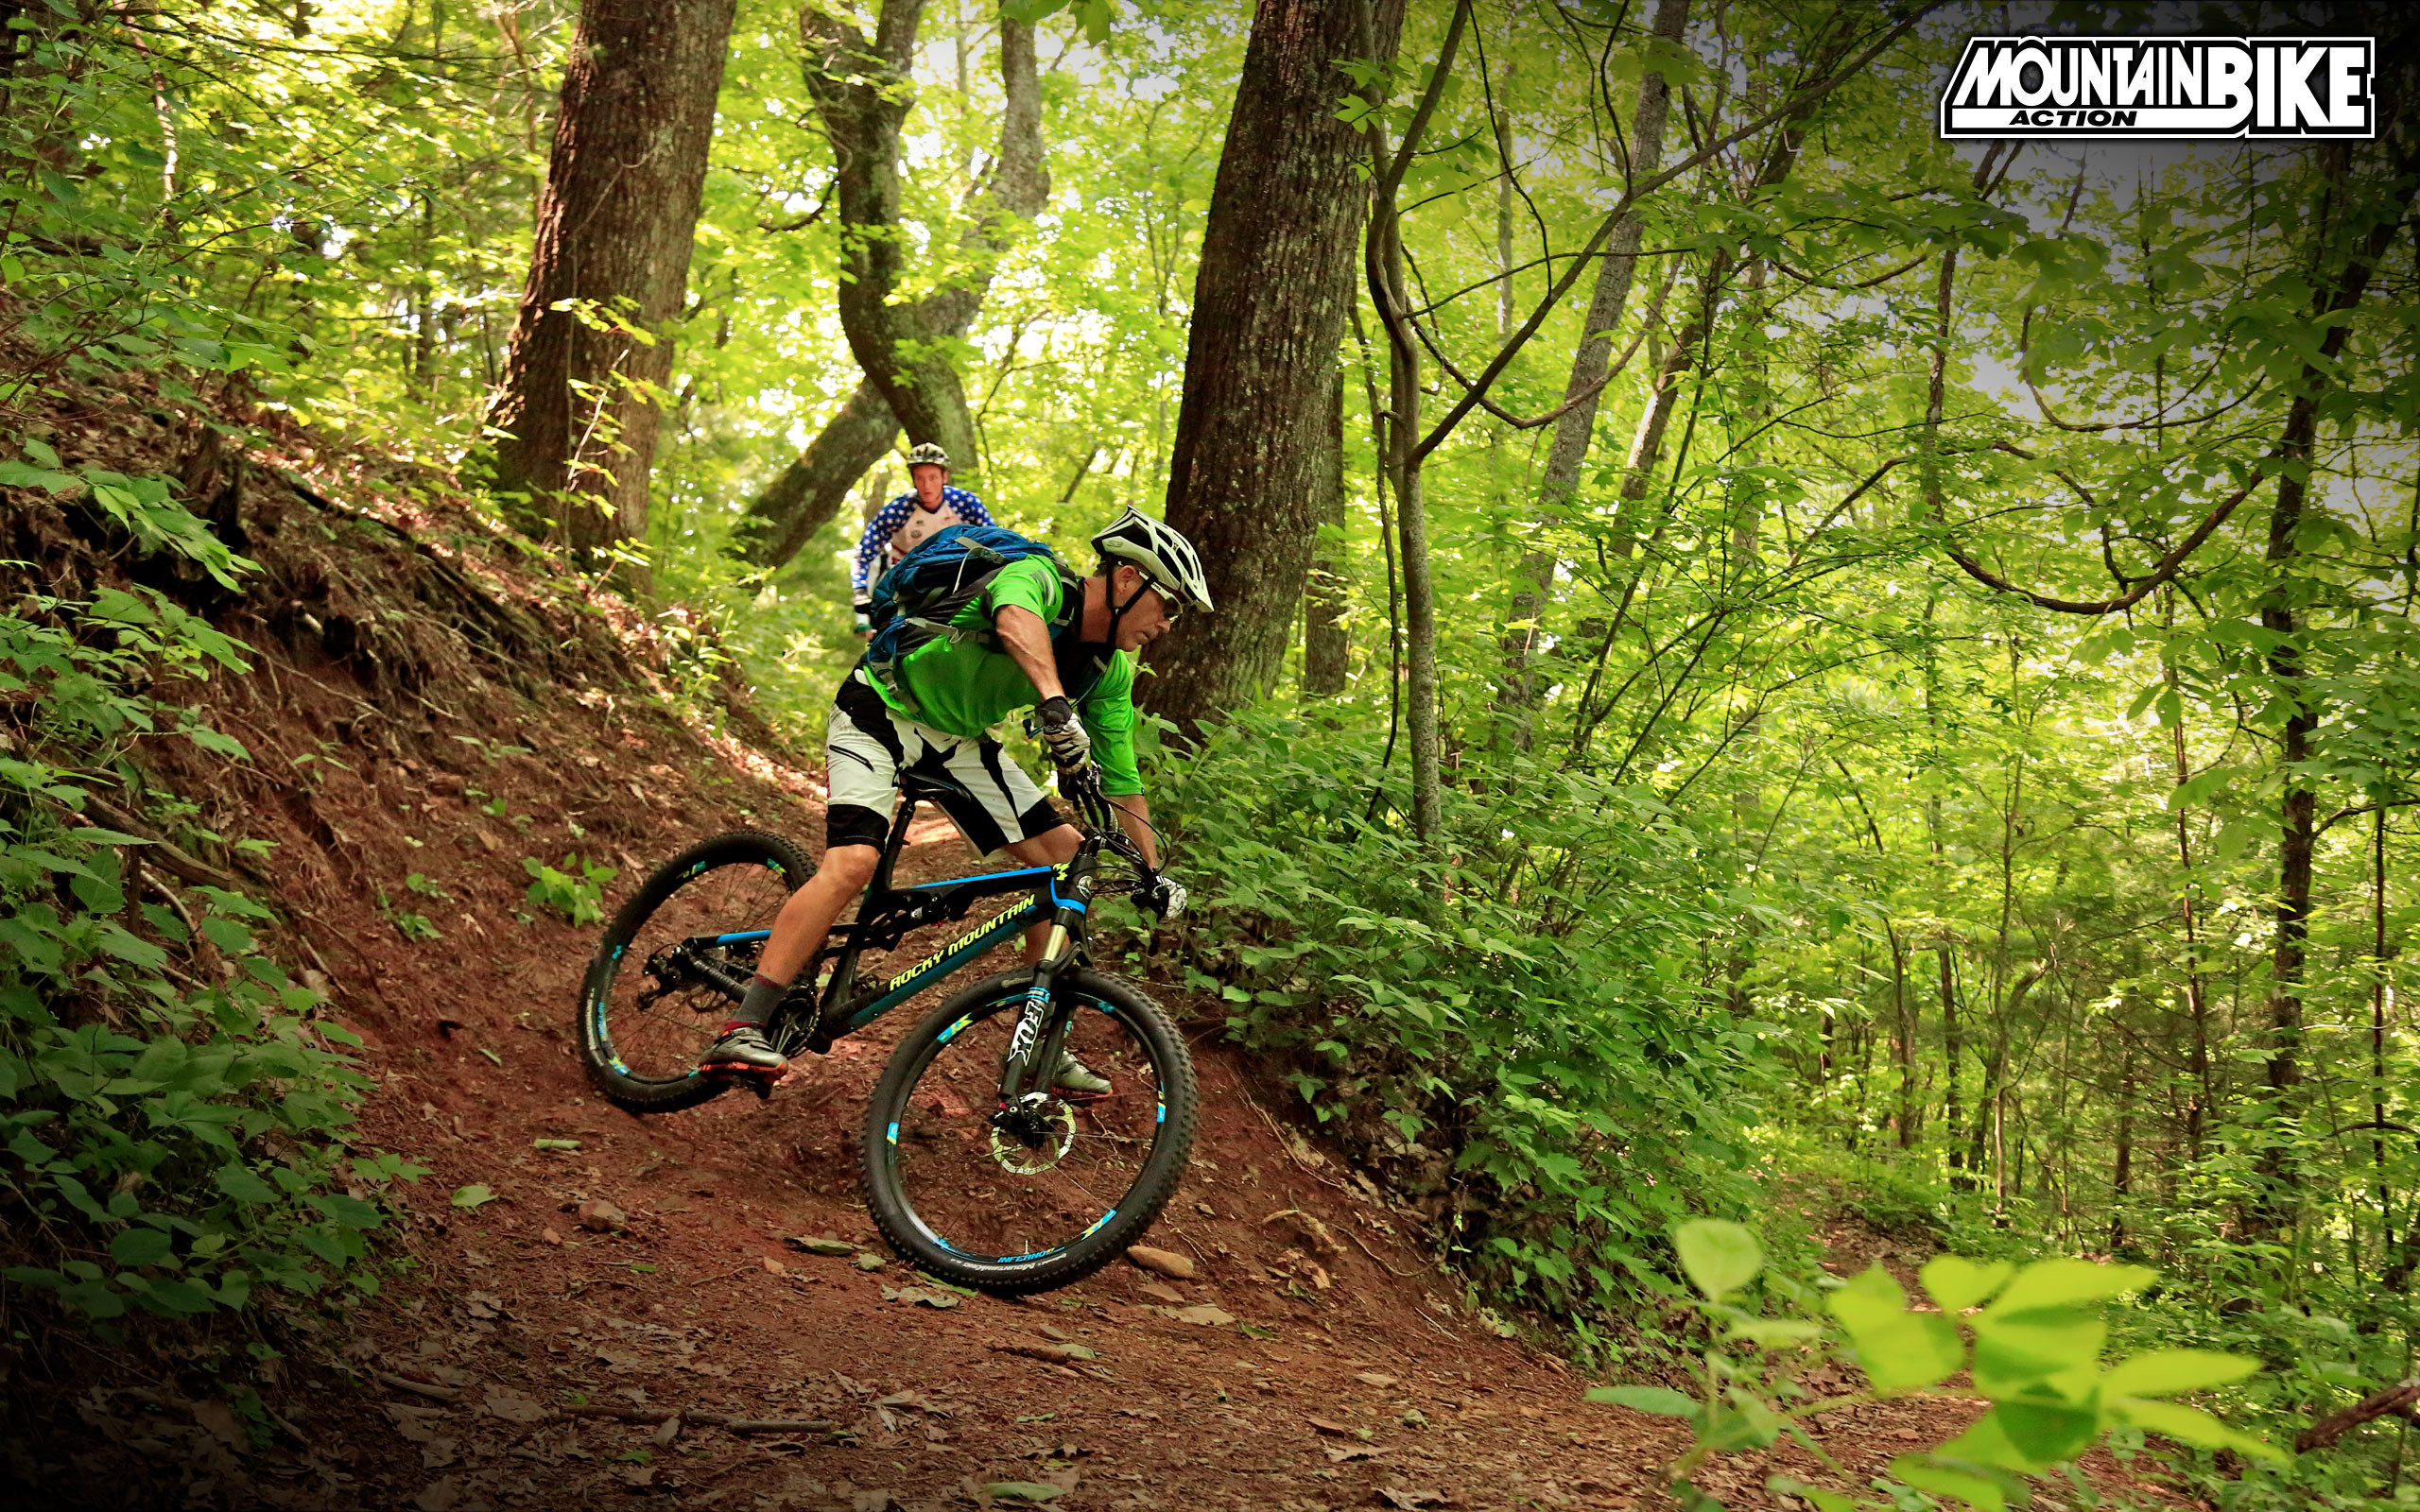 Mountain Road Bike Wallpapers: Downhill Mountain Bike Wallpaper (67+ Images